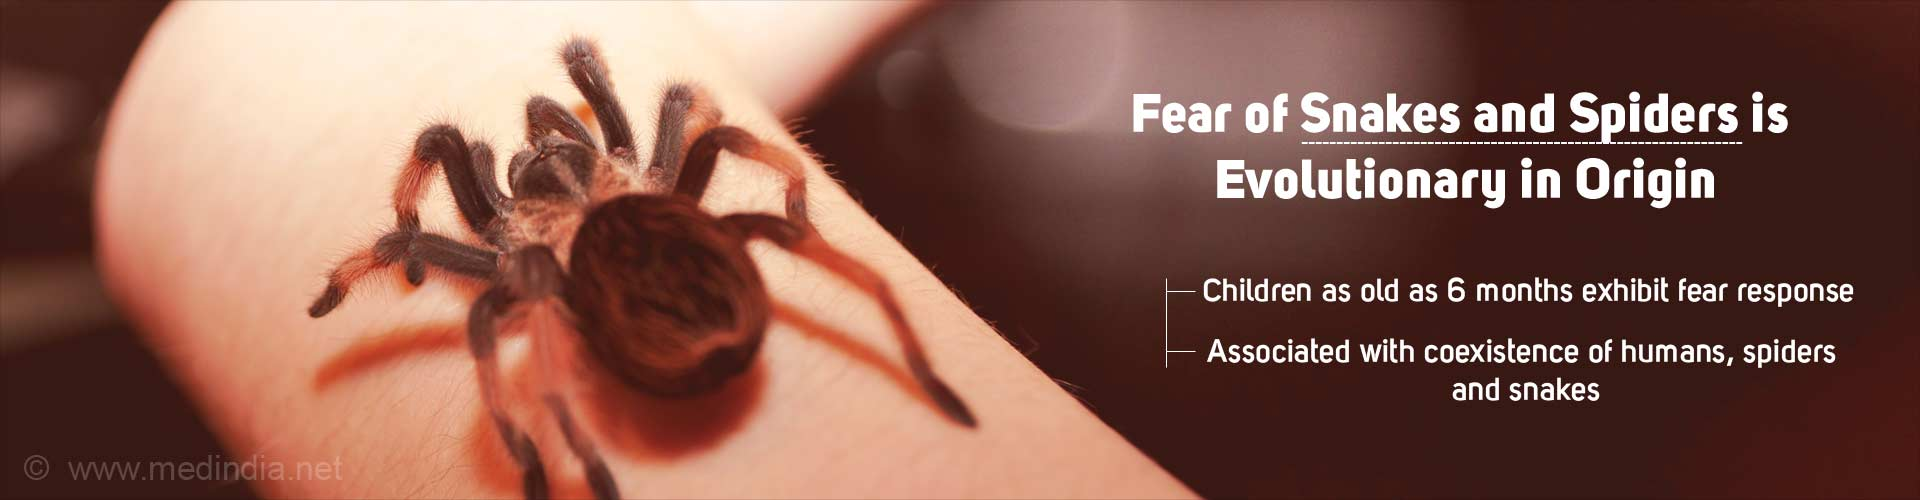 Fear for Spiders and Snakes Evolutionary, Shows Study